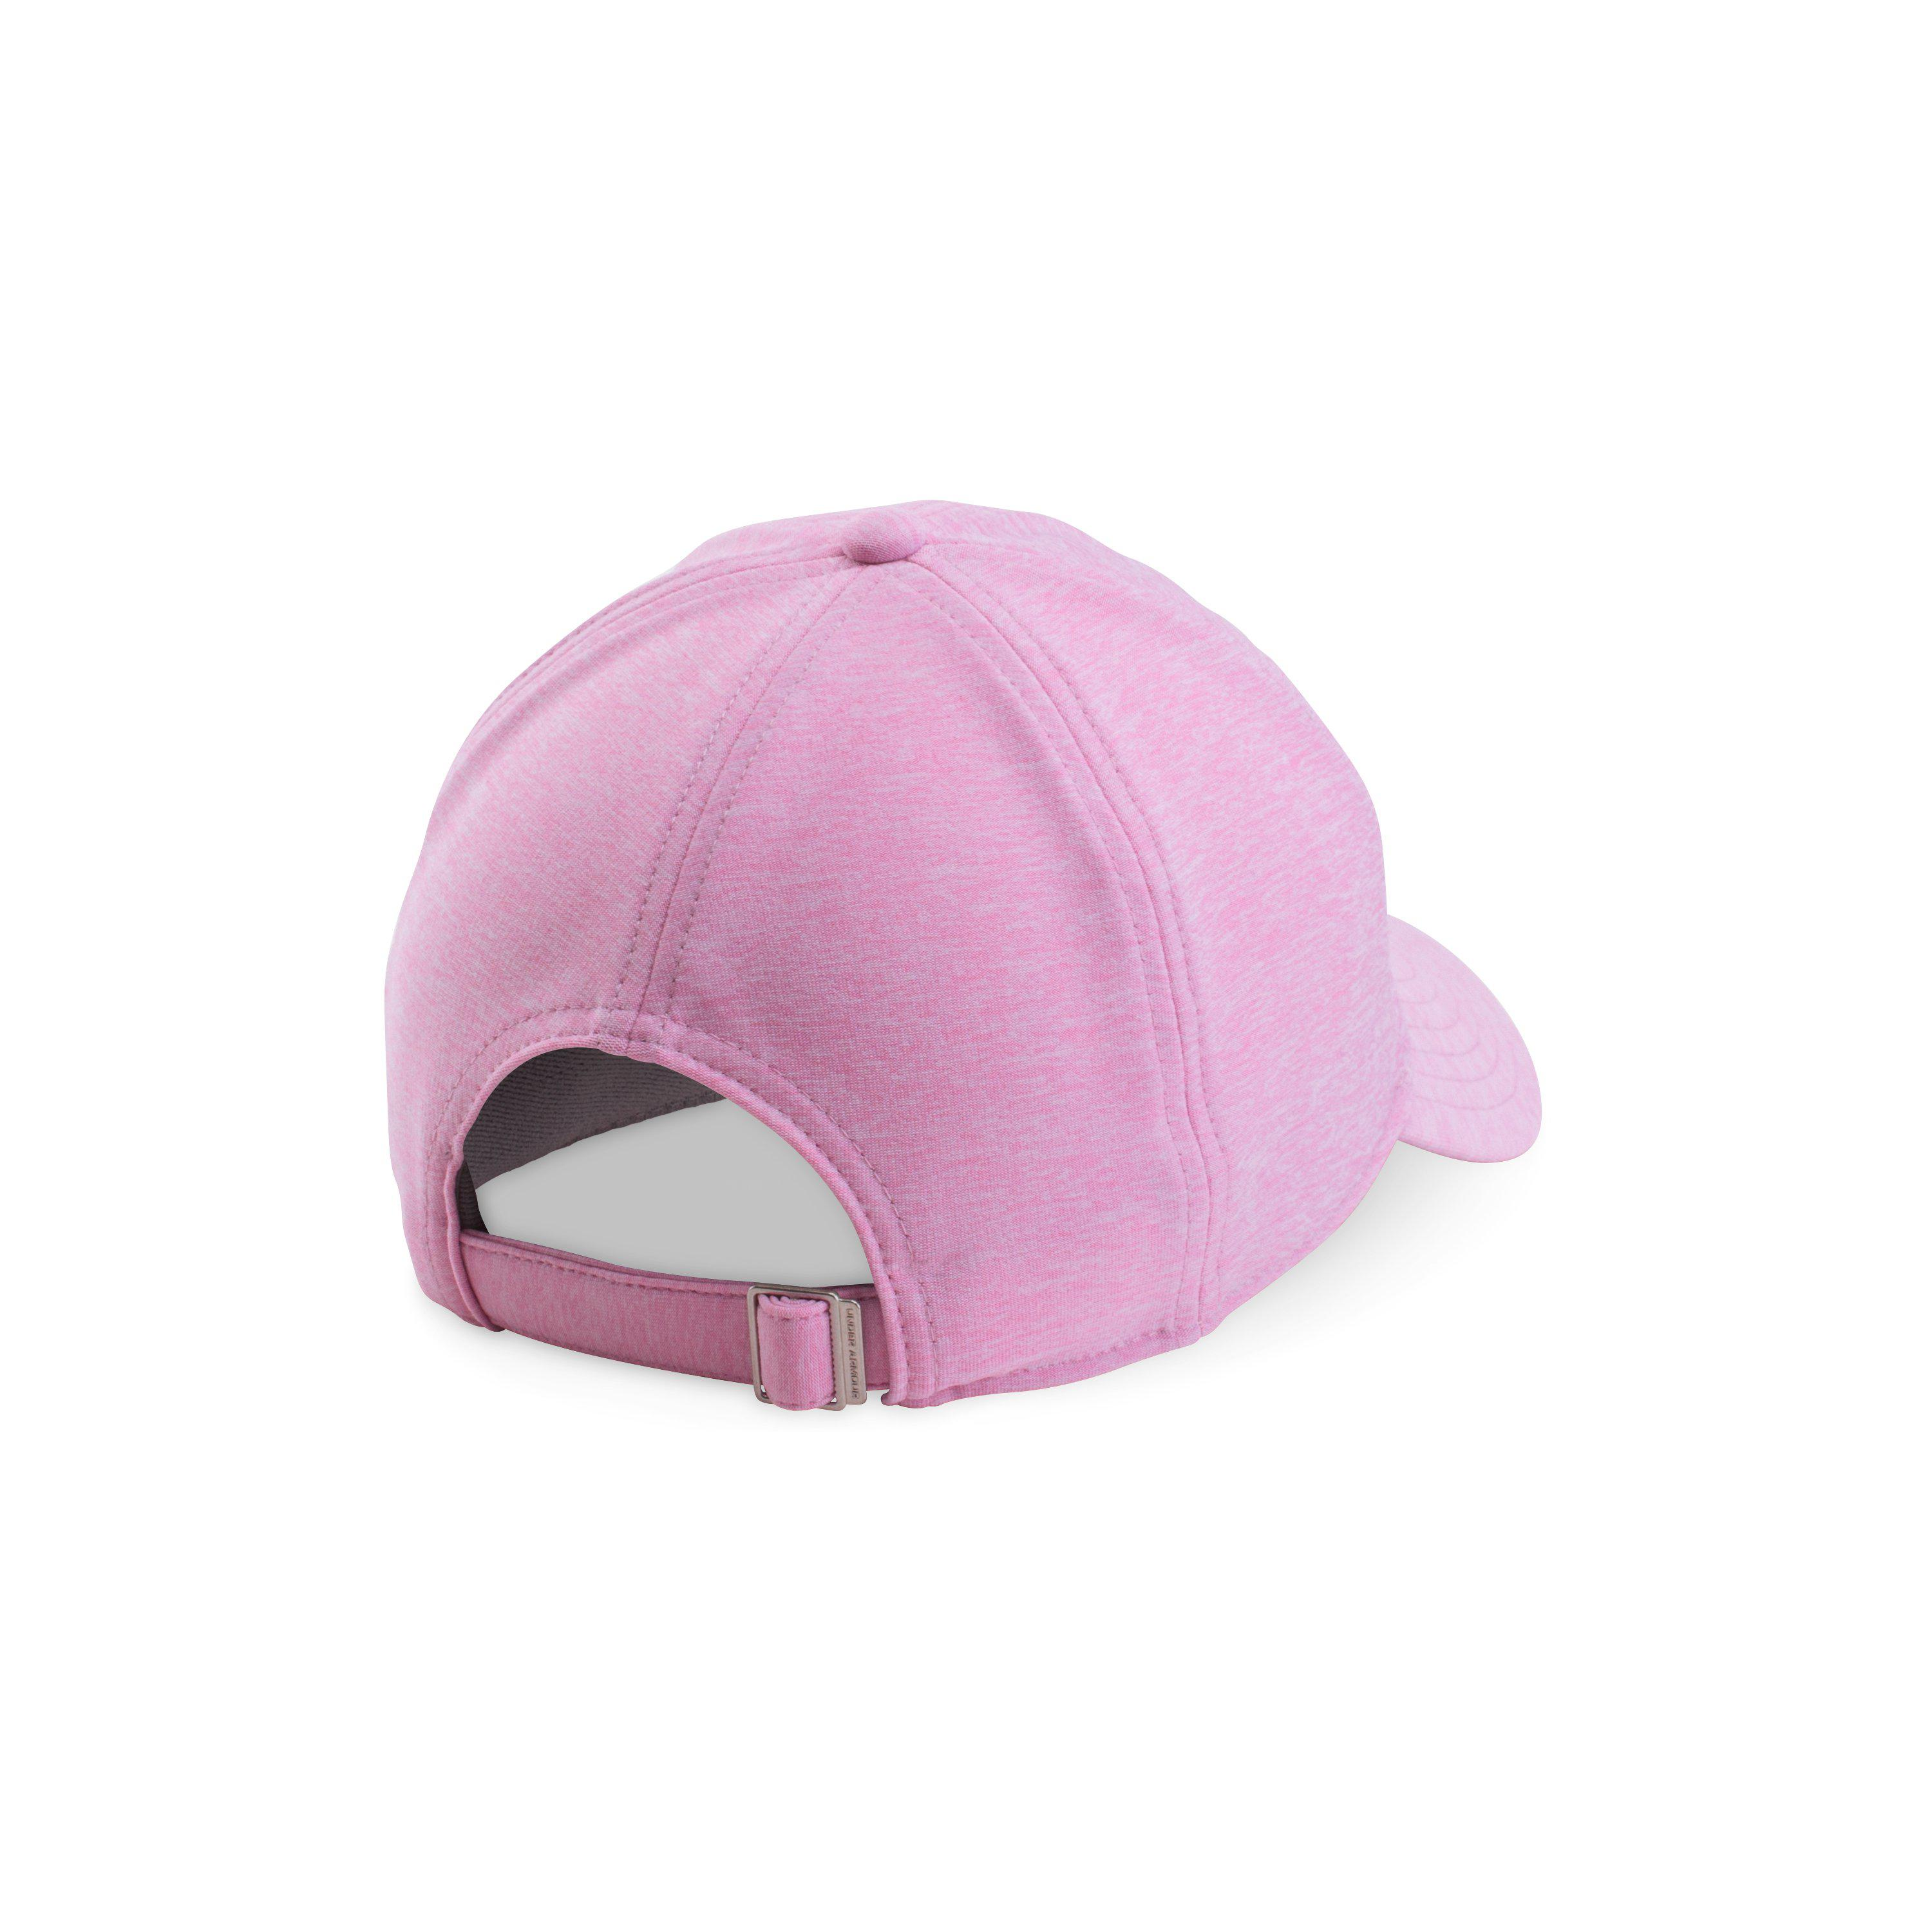 premium selection 441ae a381c Lyst - Under Armour Women s Ua Renegade Twist Cap in Pink